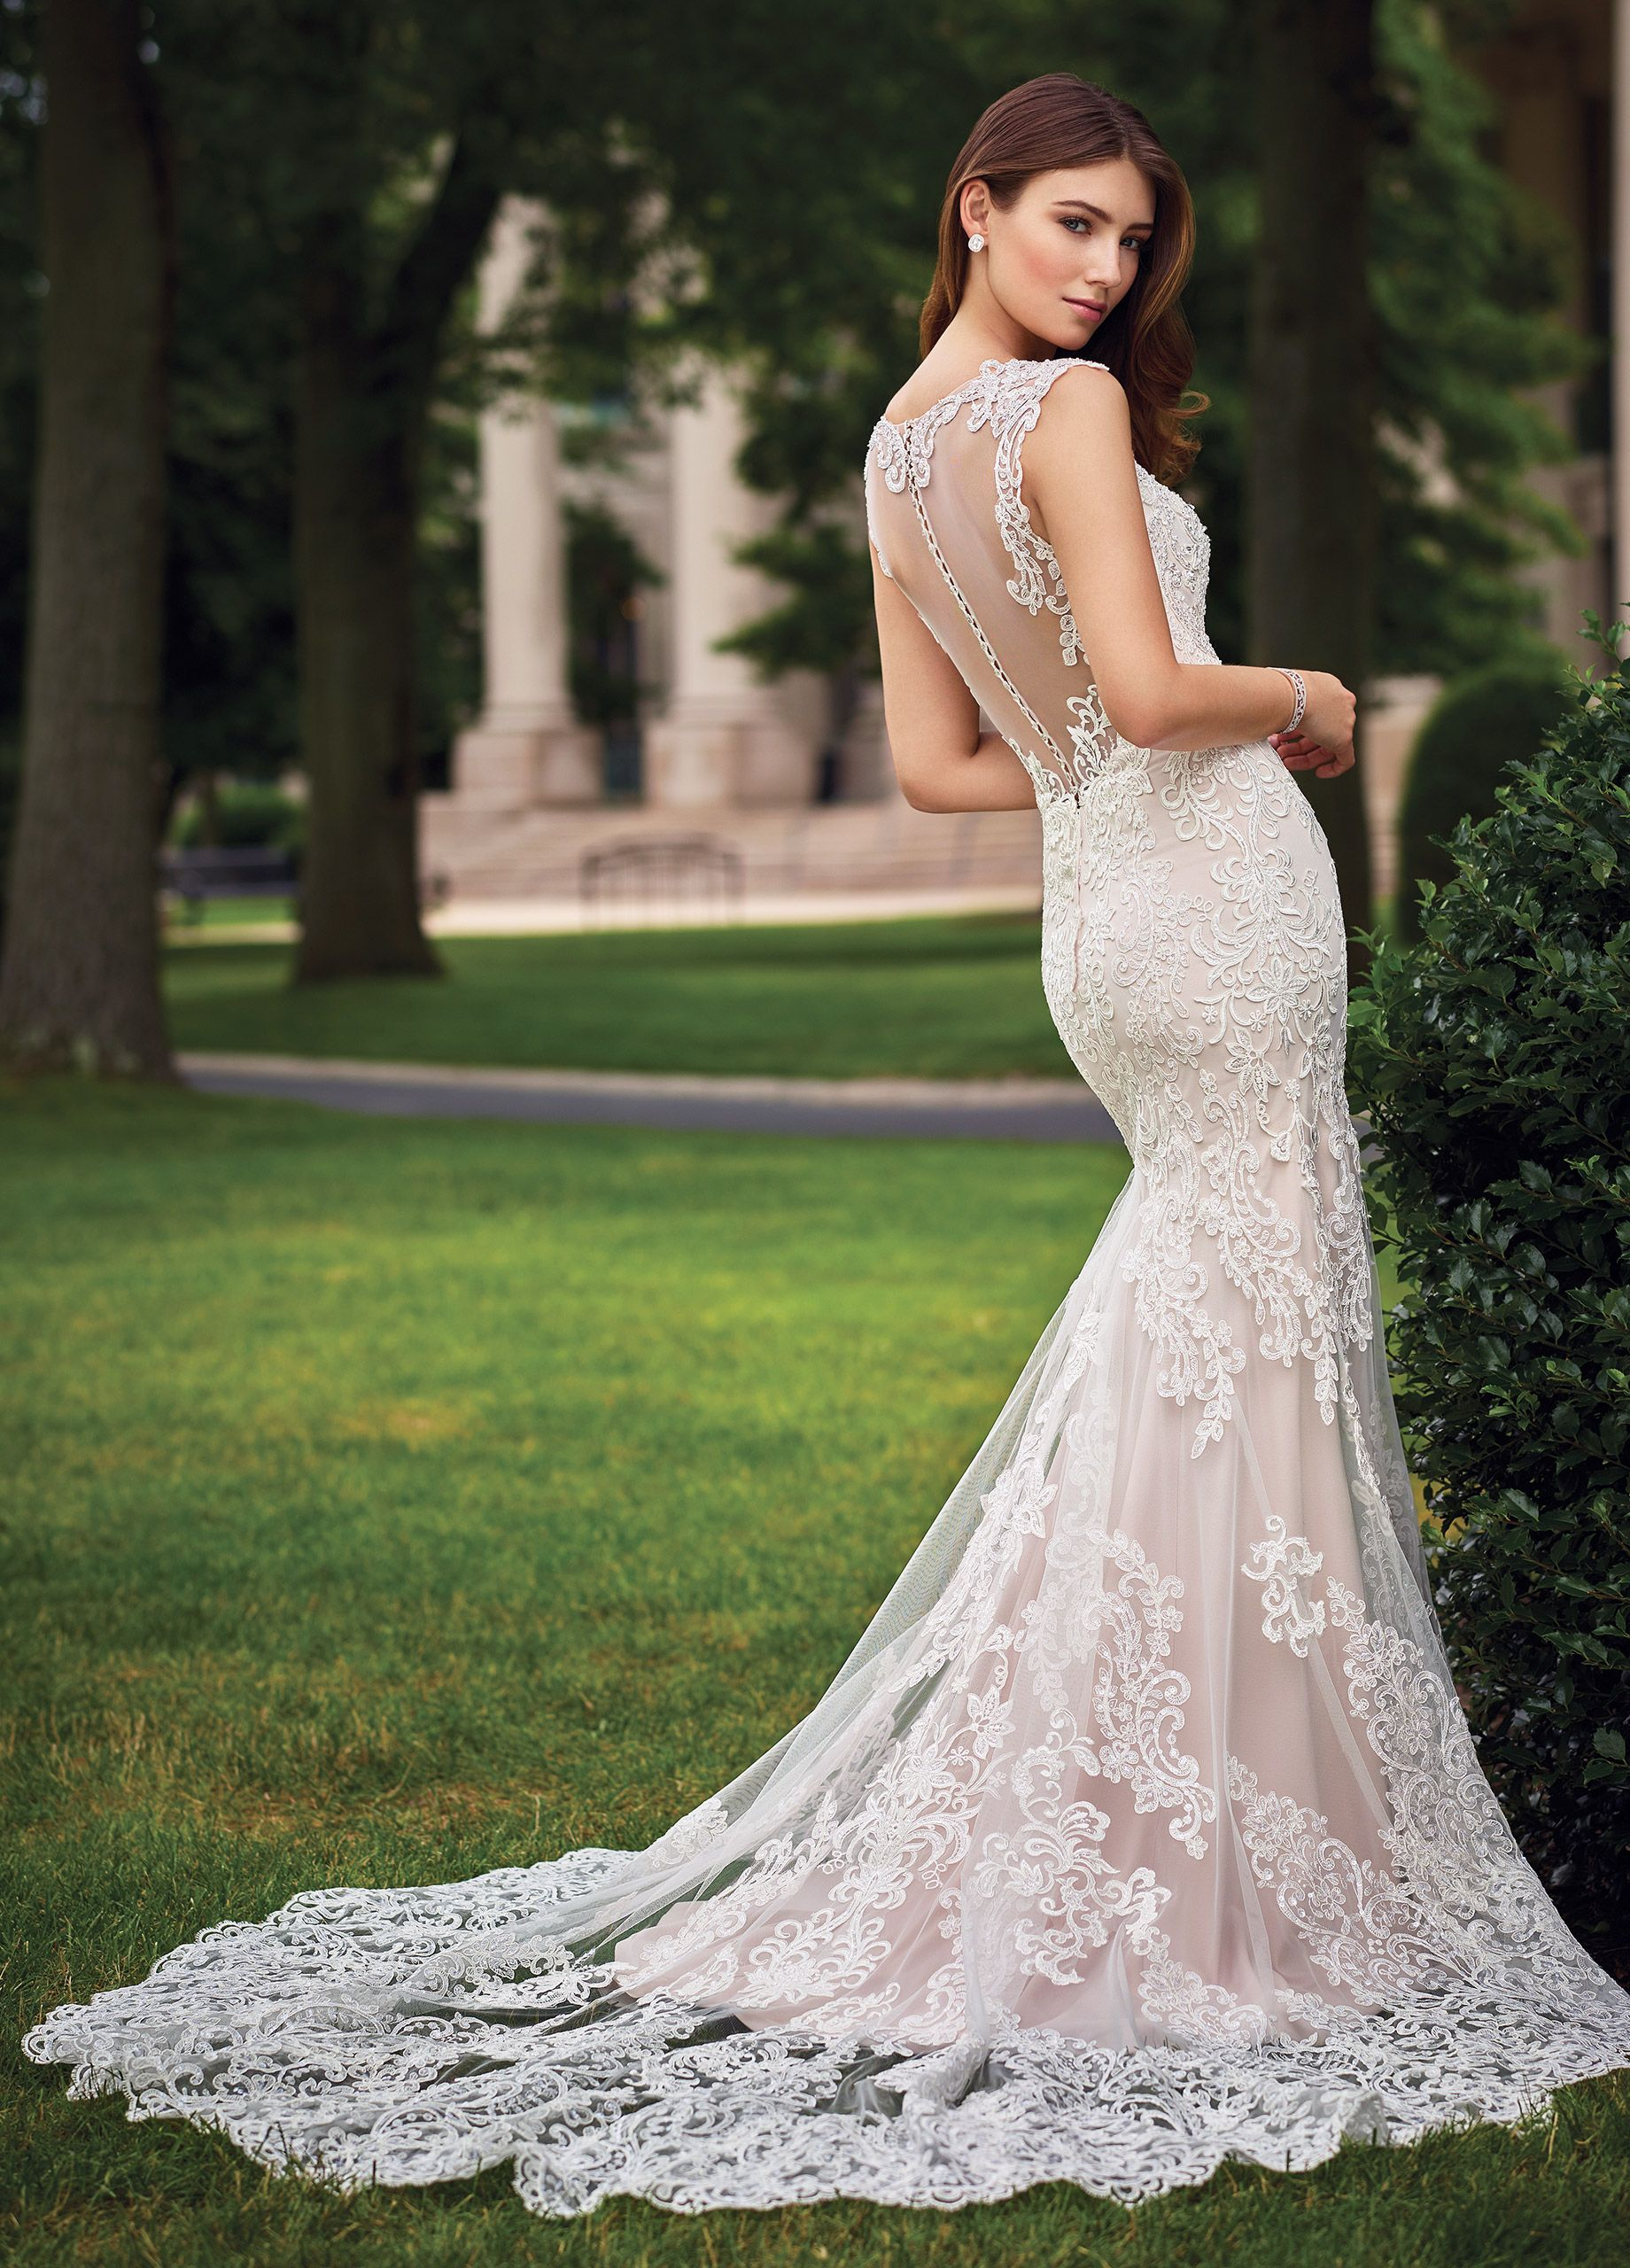 Illusion lace wedding dress  Fitted Lace CapSleeved Wedding Dress  Sonal  Beaded lace